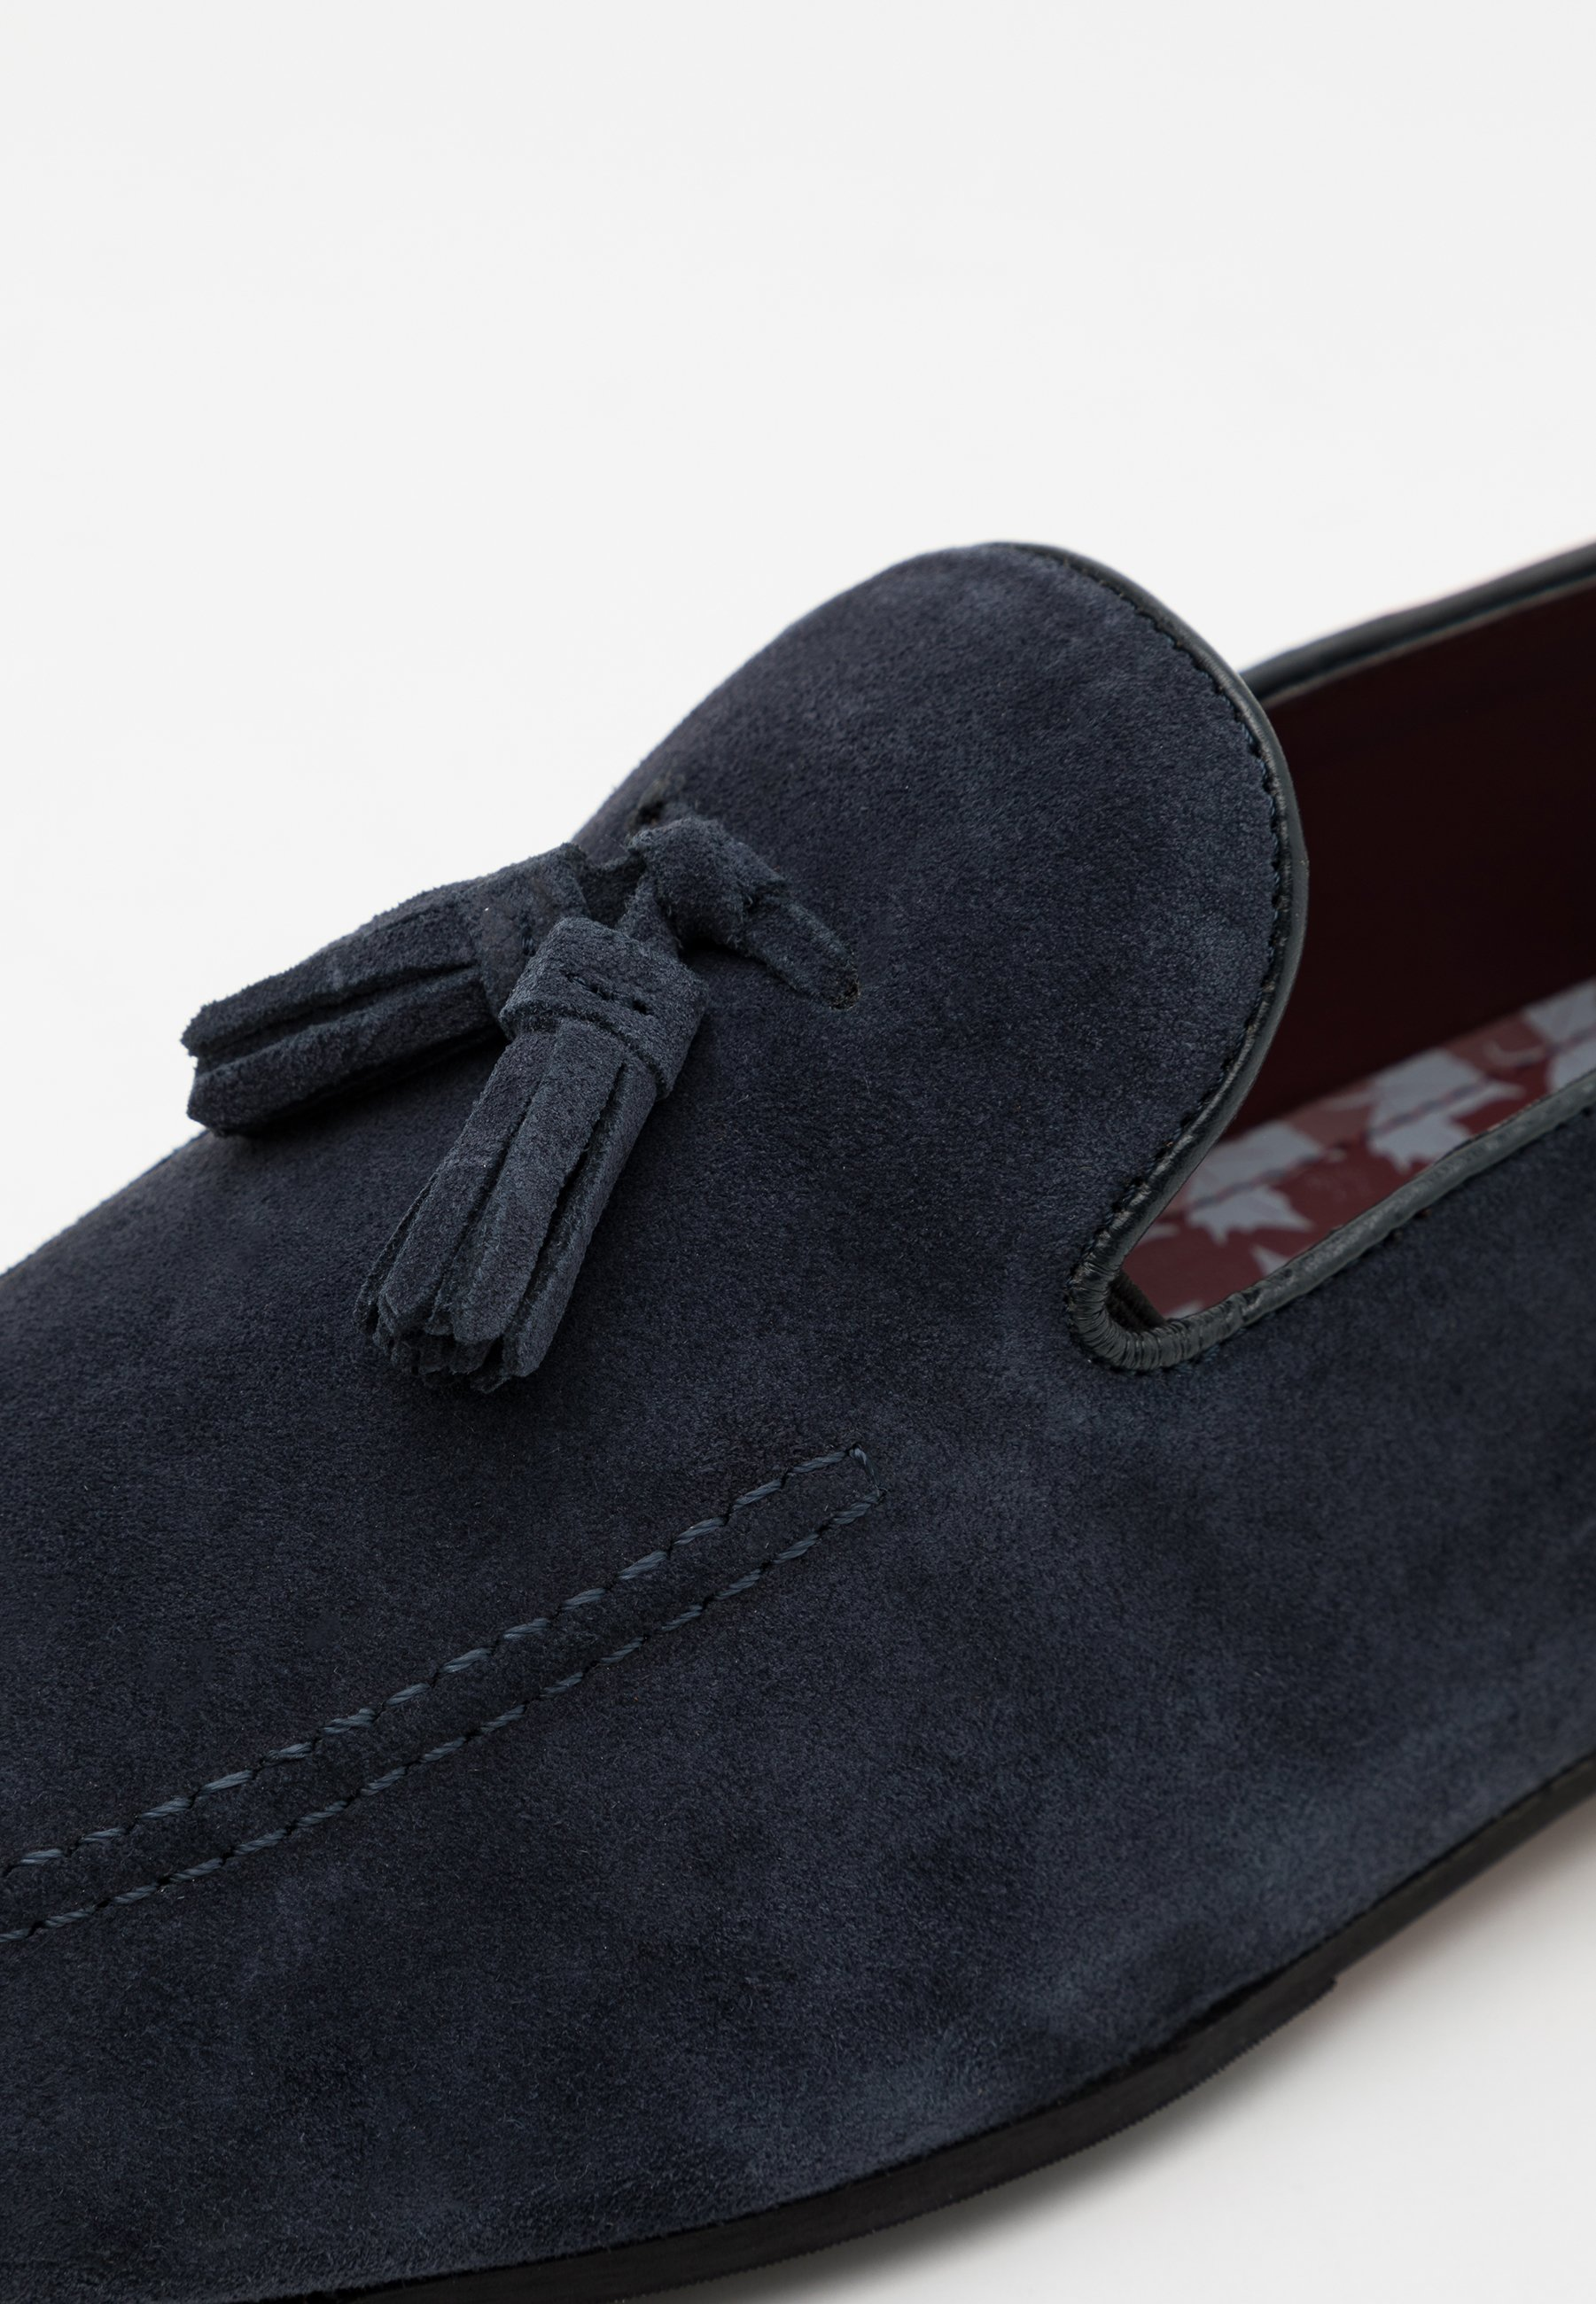 Walk London TERRY TASSEL LOAFER Pensko blue grey